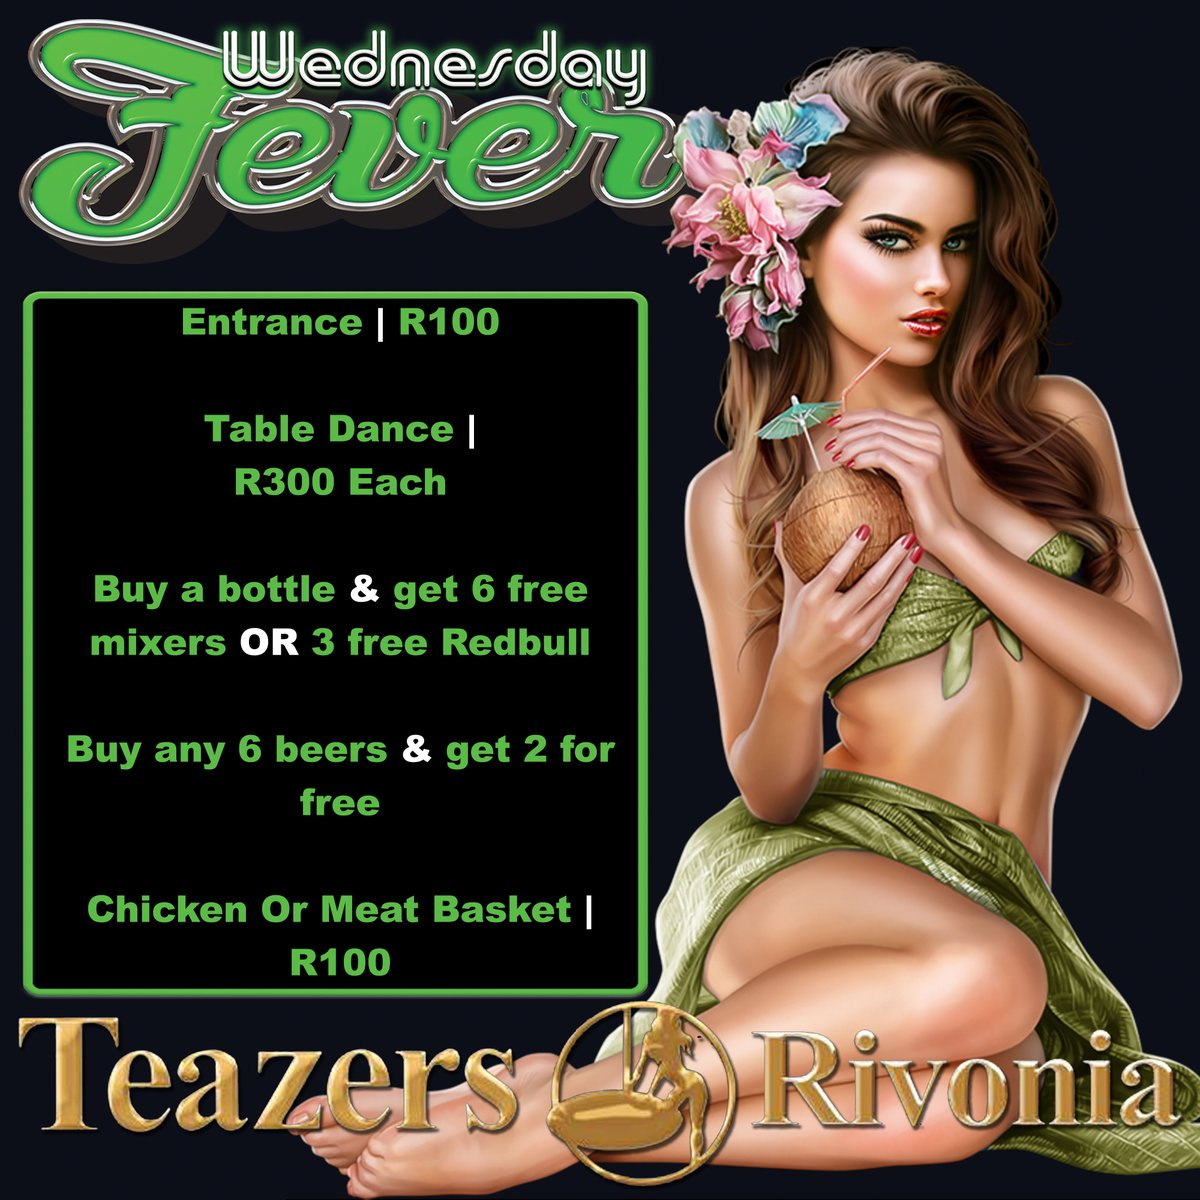 #fitness #girlswithmuscle #fitbabe #splash #entertainers #exoticdancer #polefit #dancelife #instafit #excotic  #SPECIALS   TEAZERS RIVONIA - 084TEAZERS CALL NOW TO BOOK ! http://www.teazerssa.com   OPENS @ 20:00PM   #TeazersBoksburg #TeazersRivonia #Teazersnationwidepic.twitter.com/WecW5QMrG9